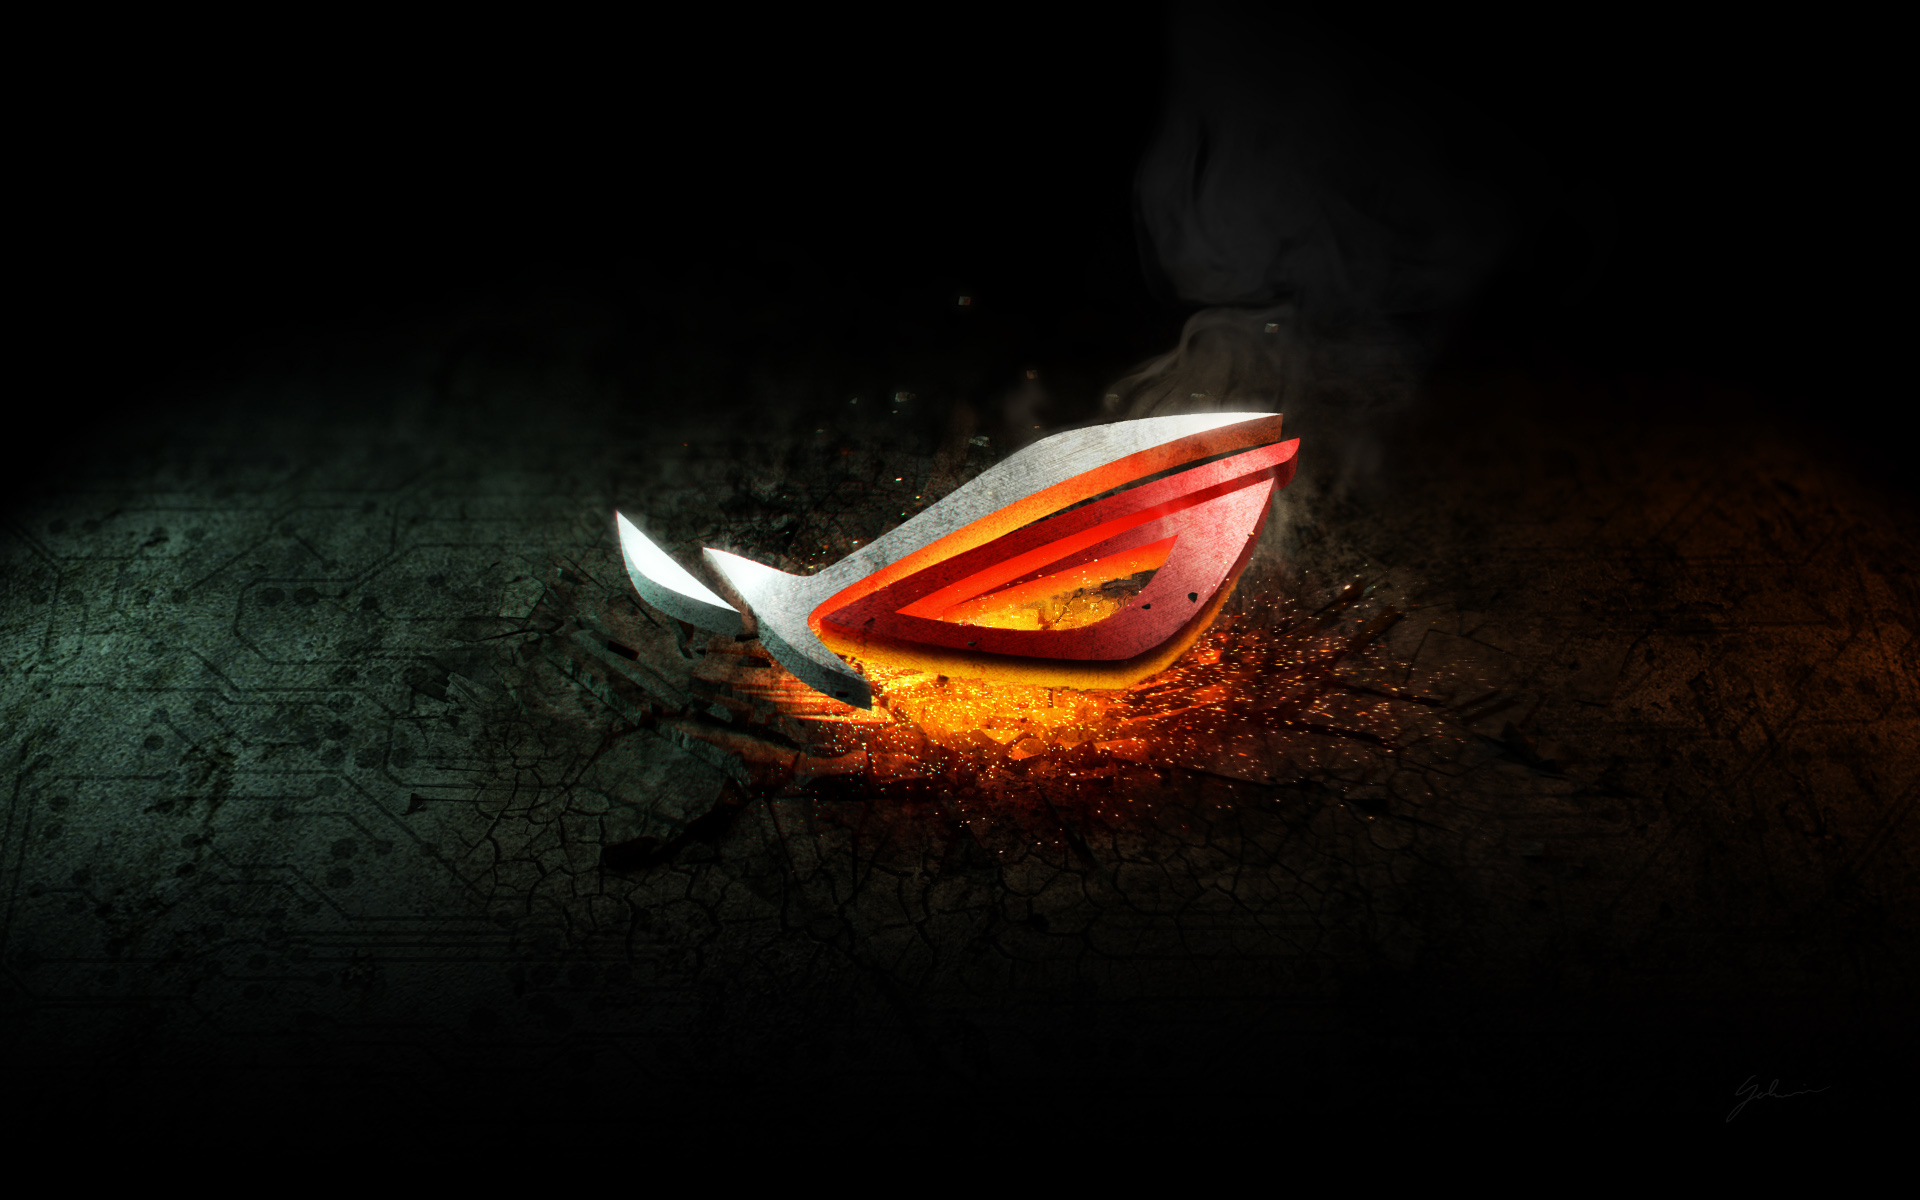 50 4k intel wallpaper on wallpapersafari - Asus x series wallpaper hd ...